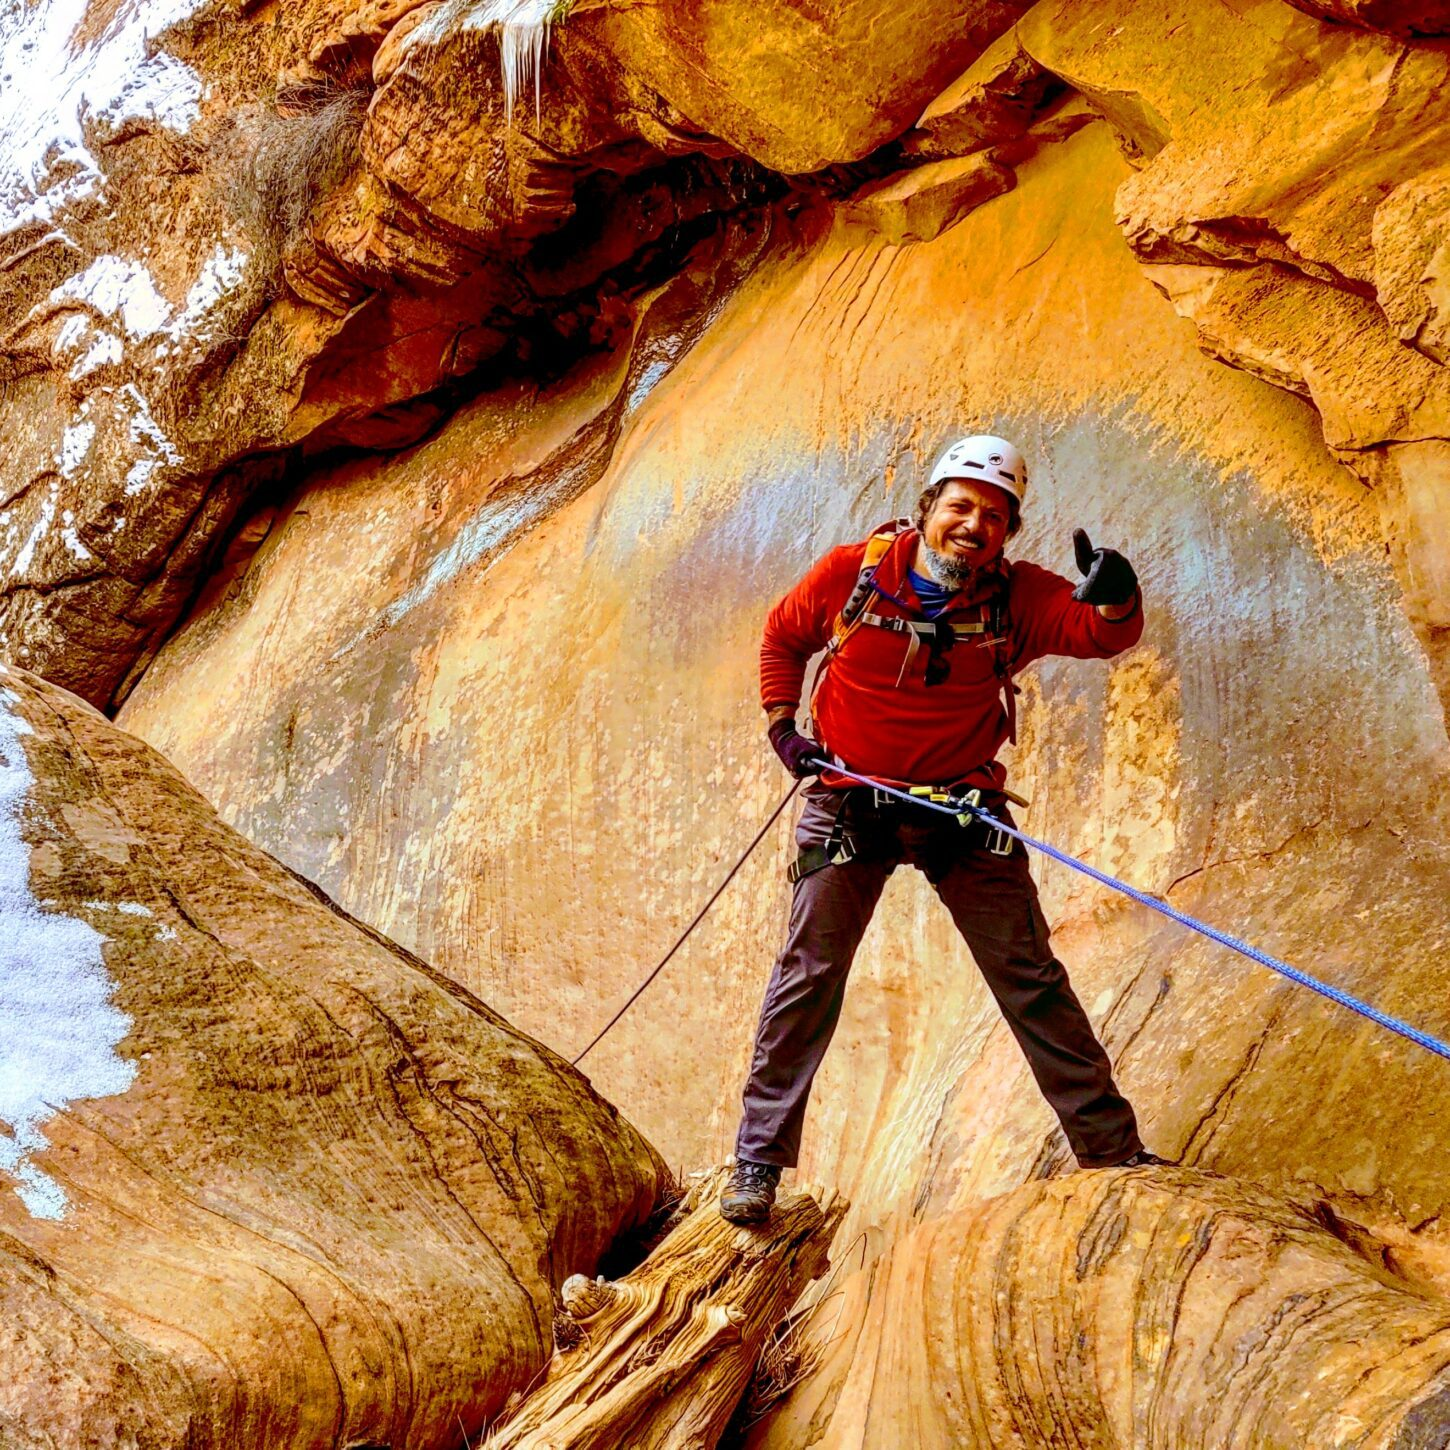 Cold weather canyoning